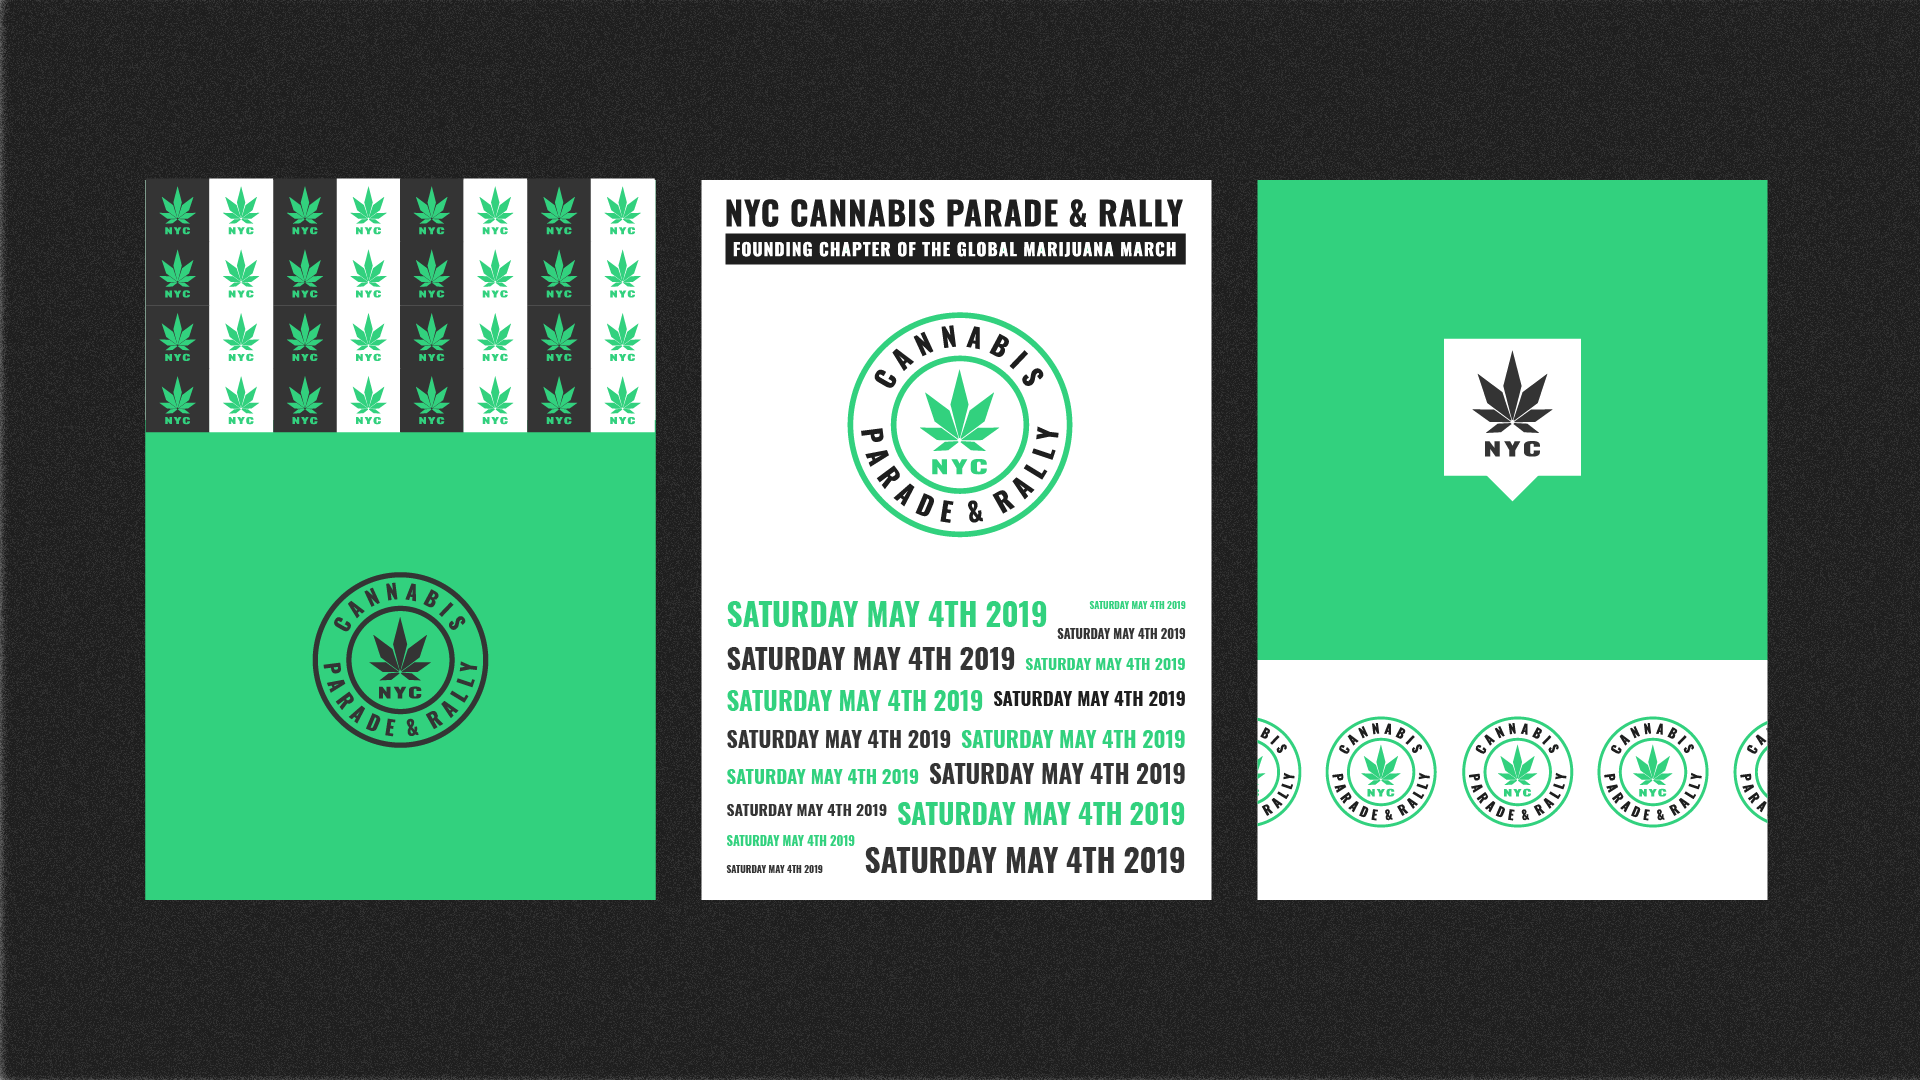 NYC Cannabis Parade visual identity by Mark Forscher